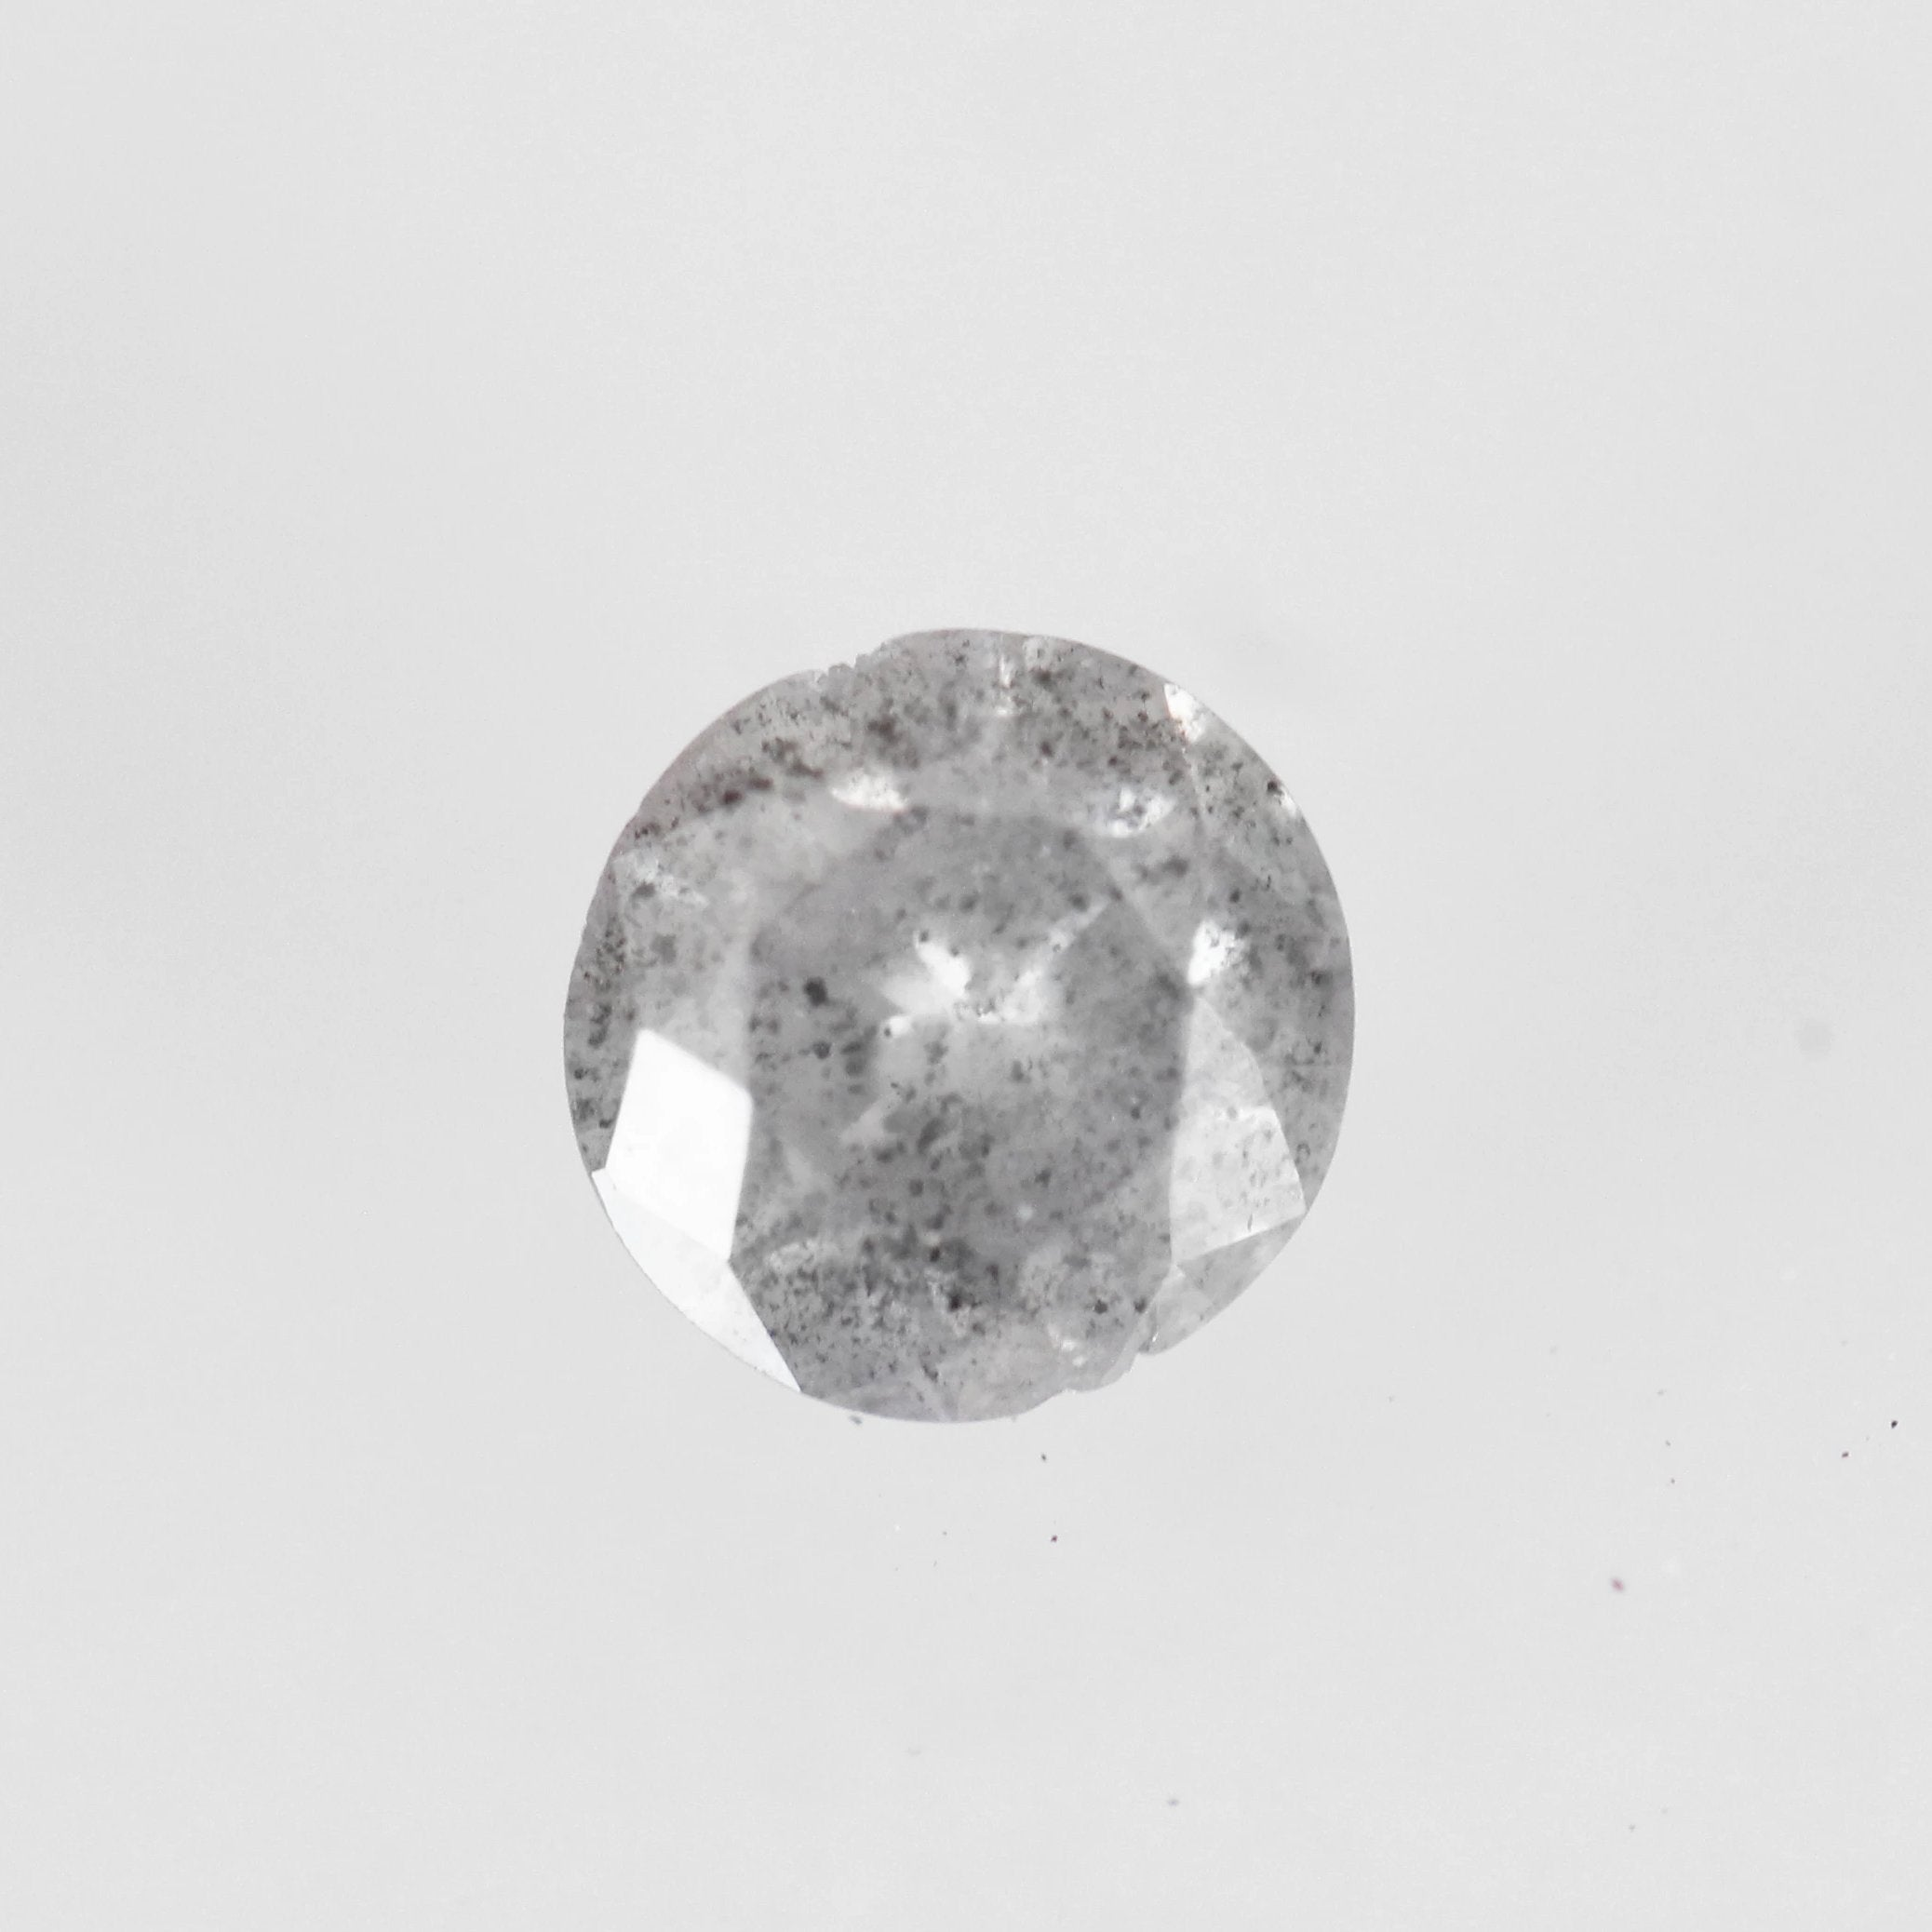 .58 Carat Round Diamond- Inventory Code RBLG58 - Celestial Diamonds ® by Midwinter Co.